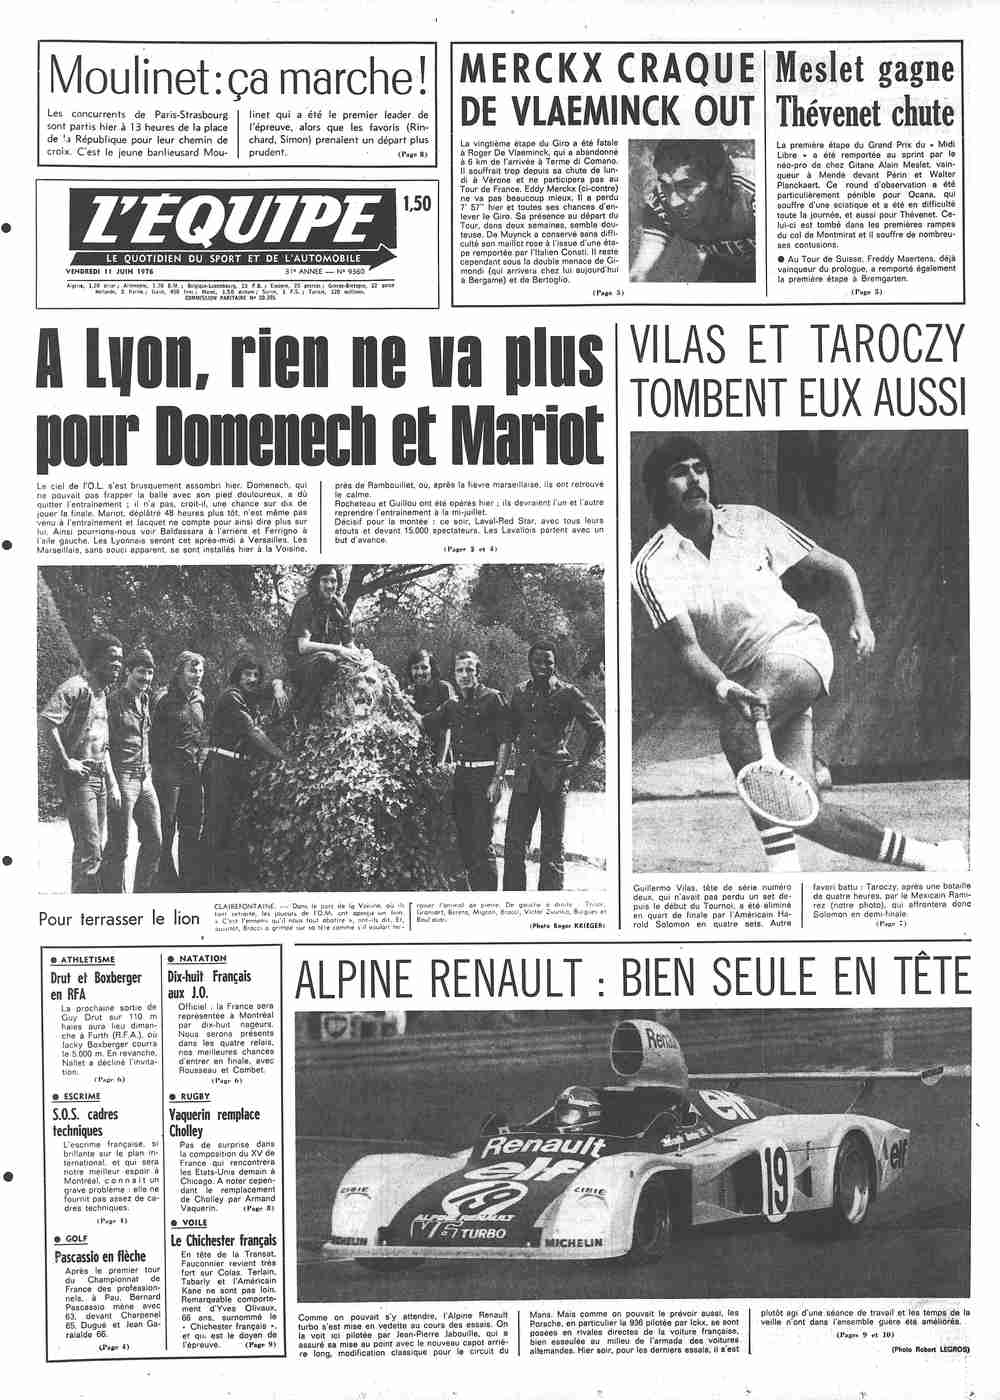 Léquipe Front Page From June 11 1976